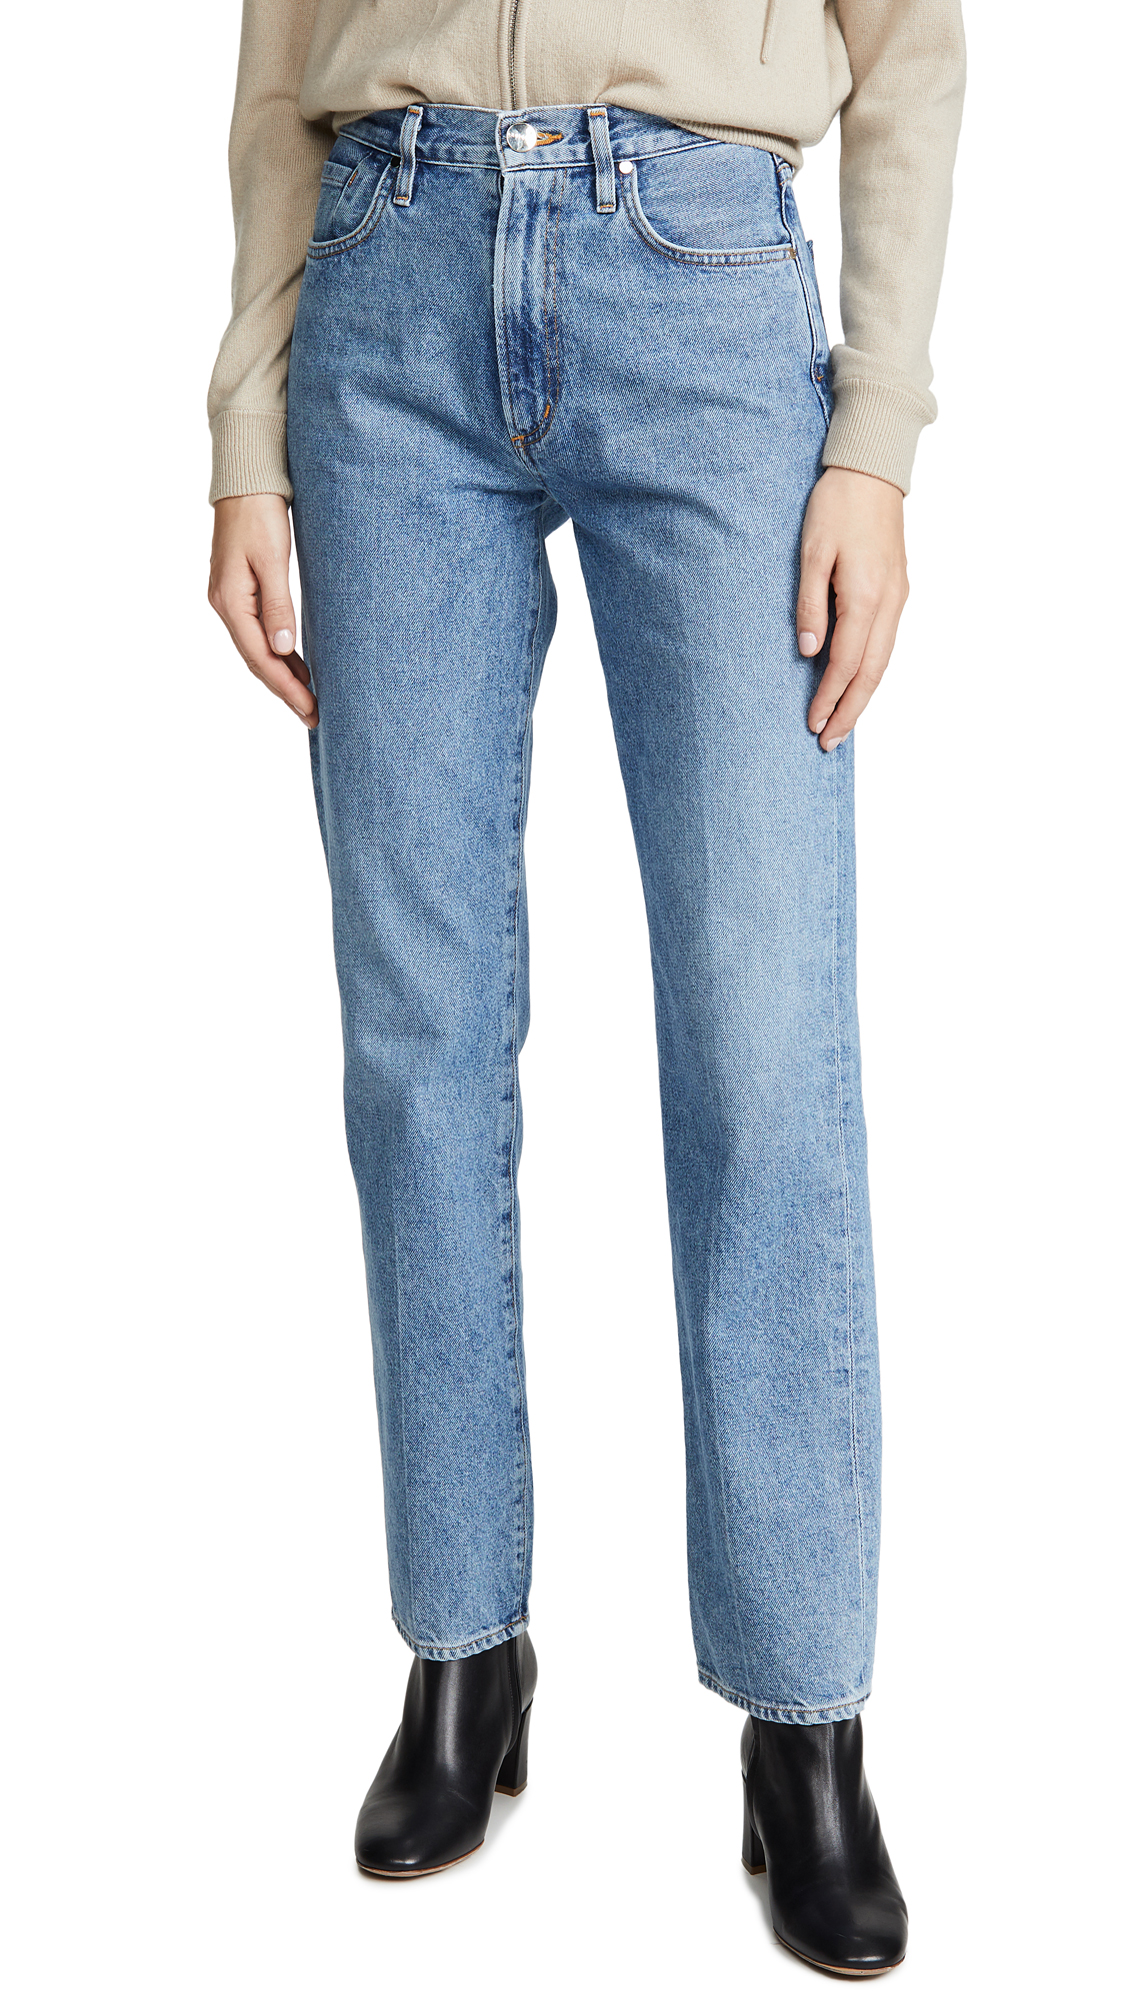 Goldsign Jeans THE NINETIES CLASSIC JEANS